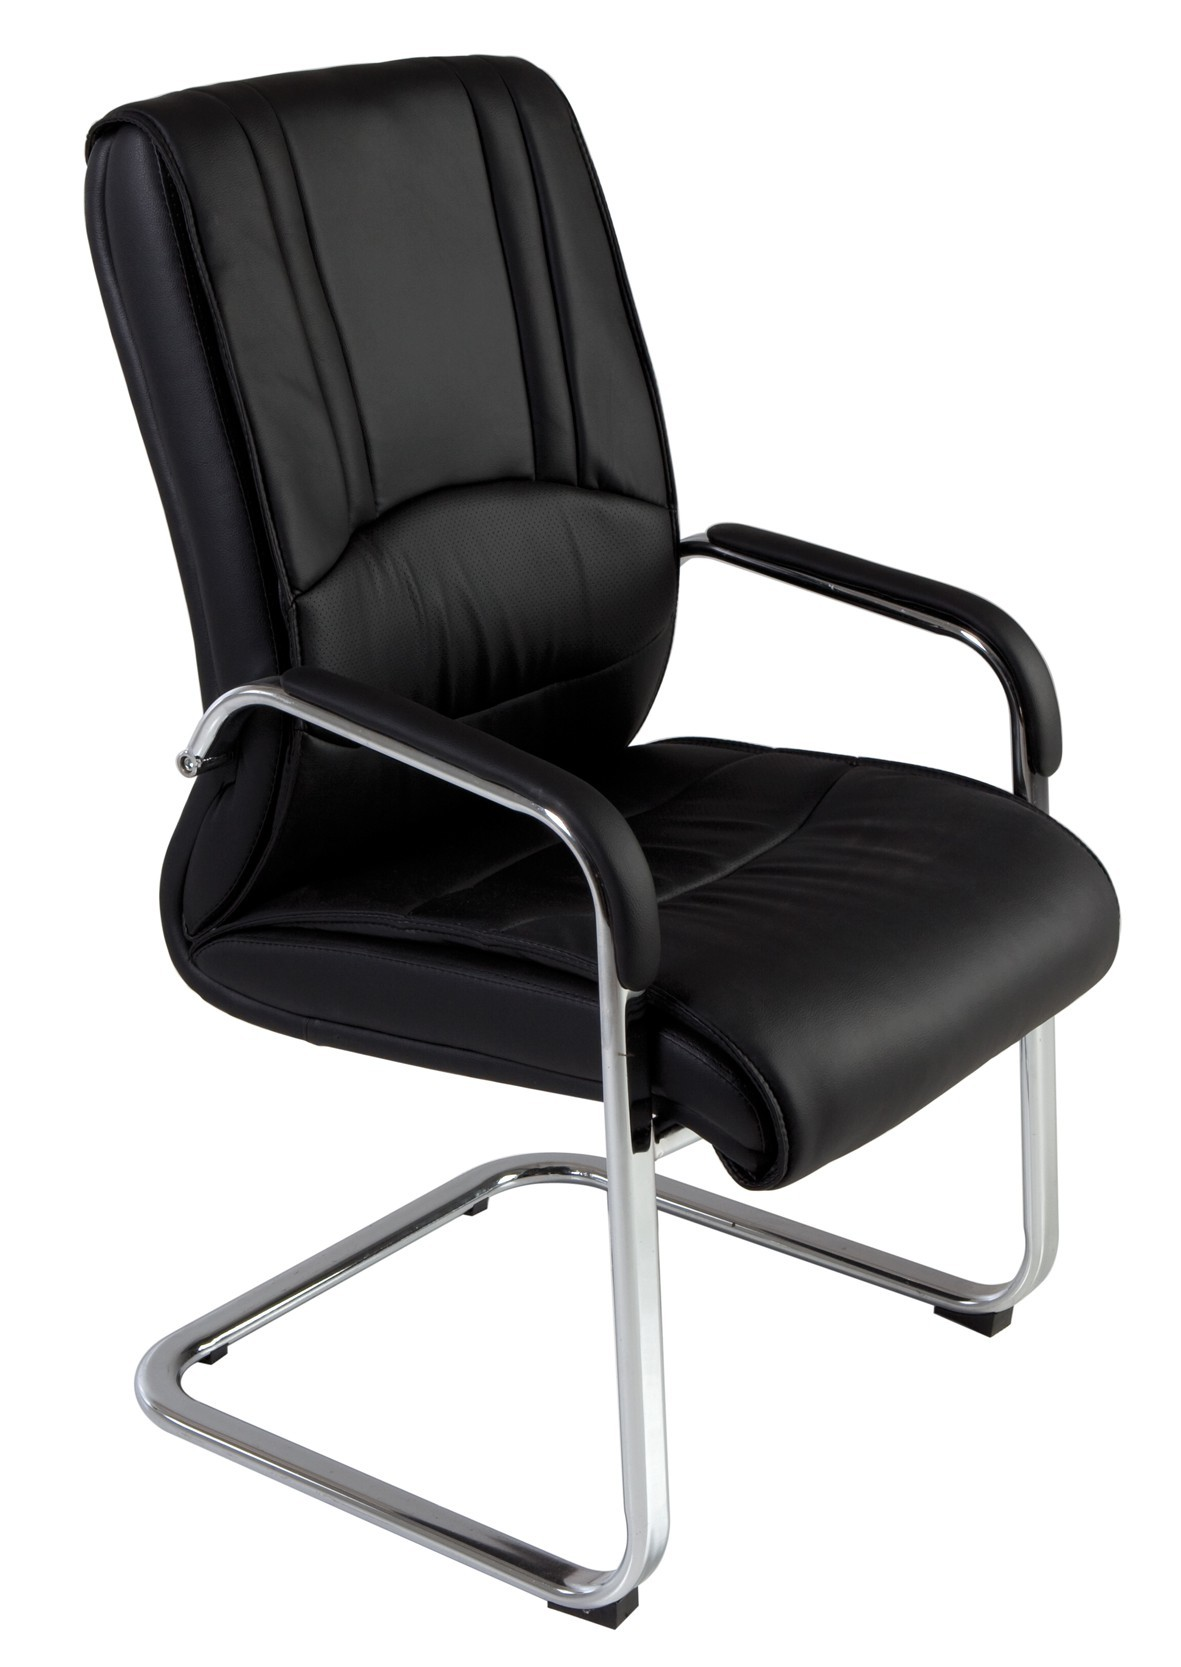 CHAIR CONFID IMITATION SKIN ECO RD-987 BLACK